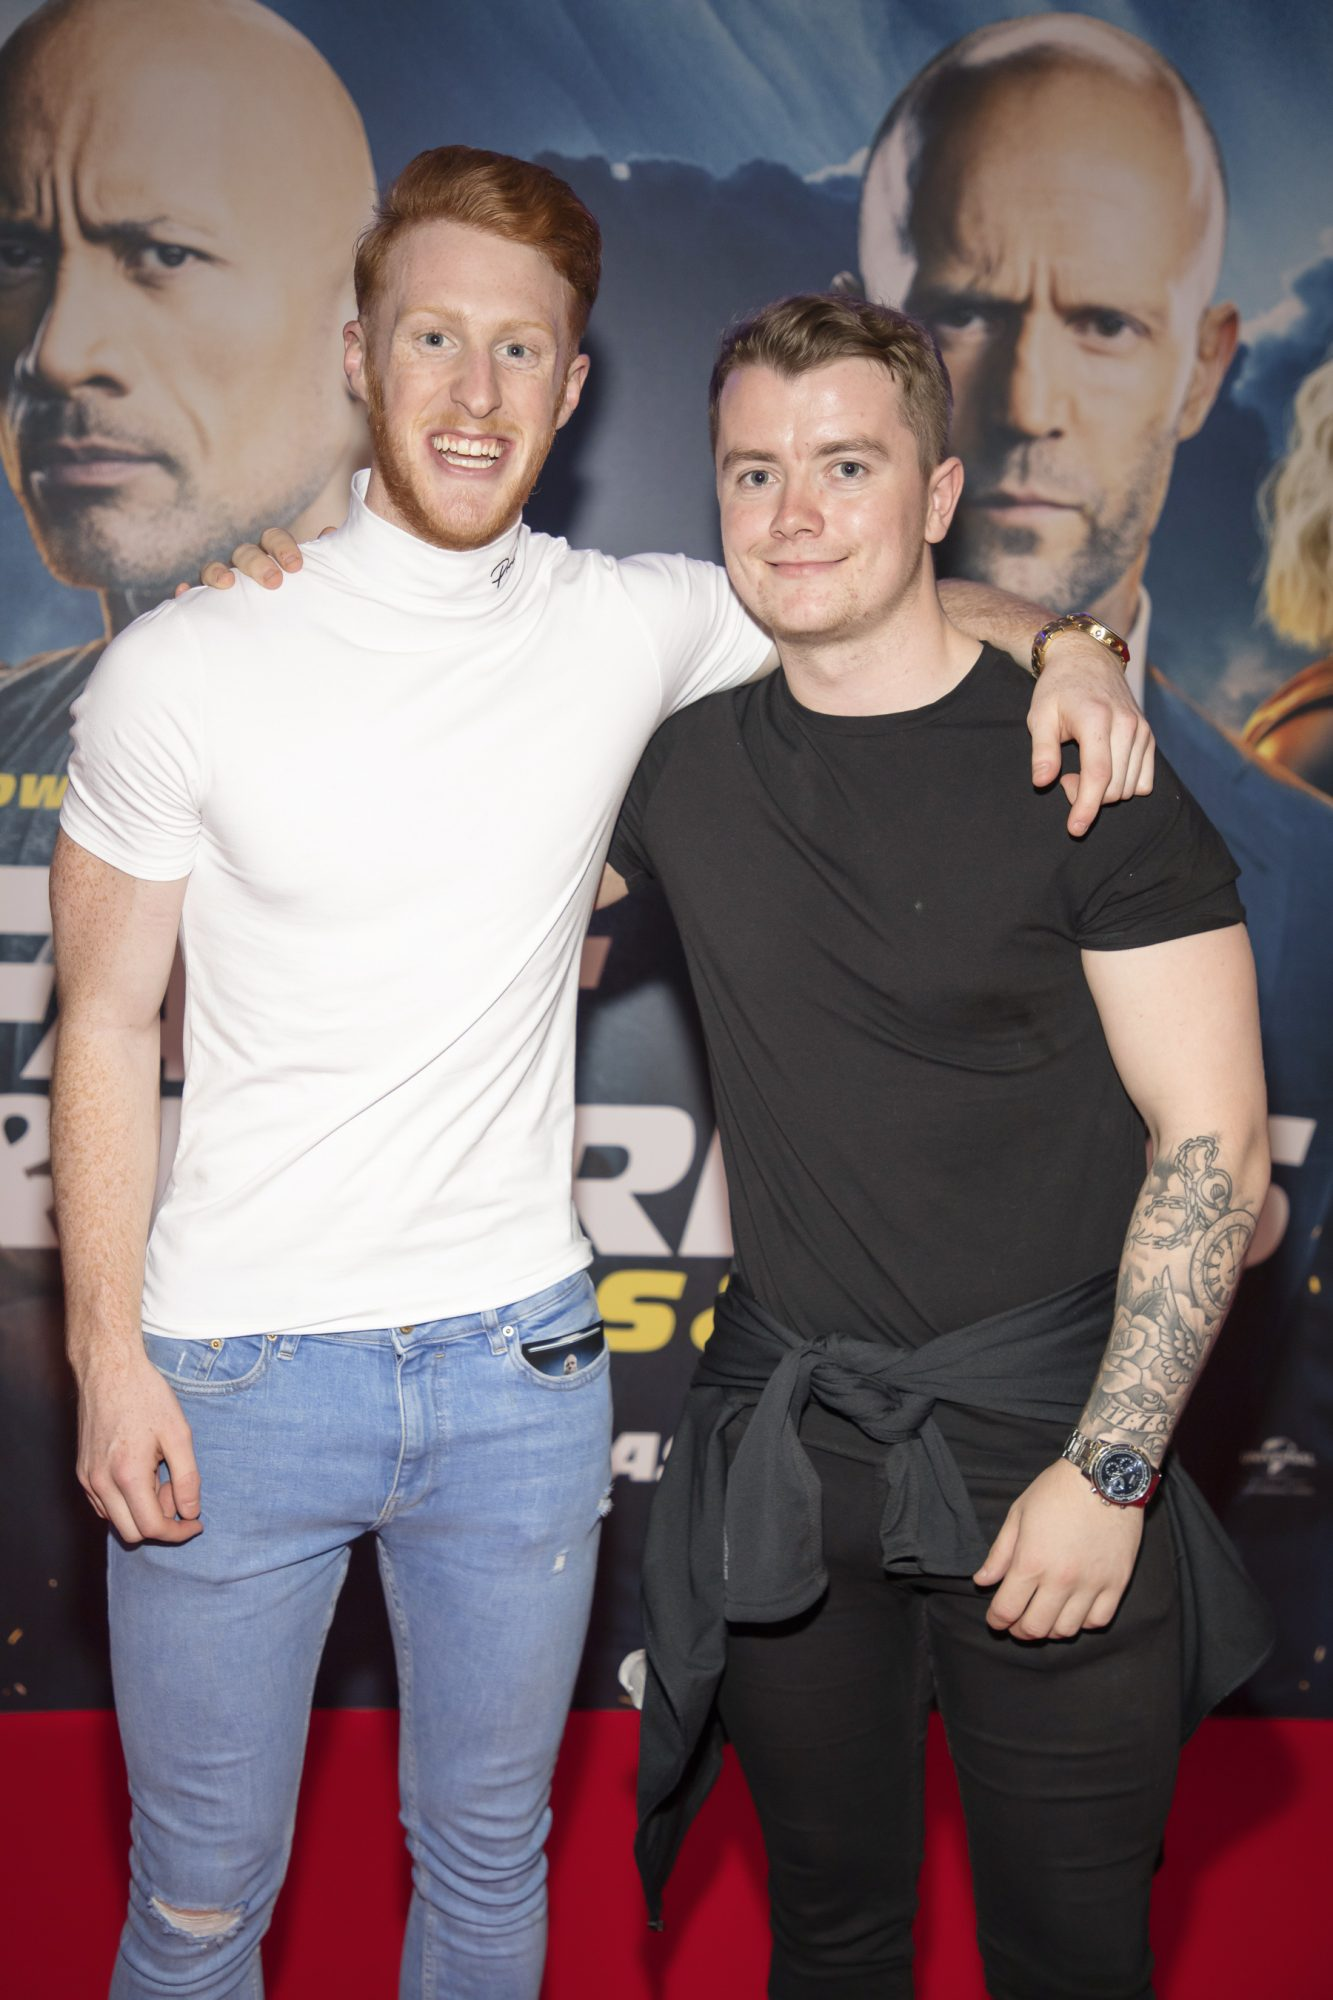 Jordan Knowles & Eric Byrne pictured at a special preview screening of Fast & Furious Presents: Hobbs & Shaw. Photo: Anthony Woods